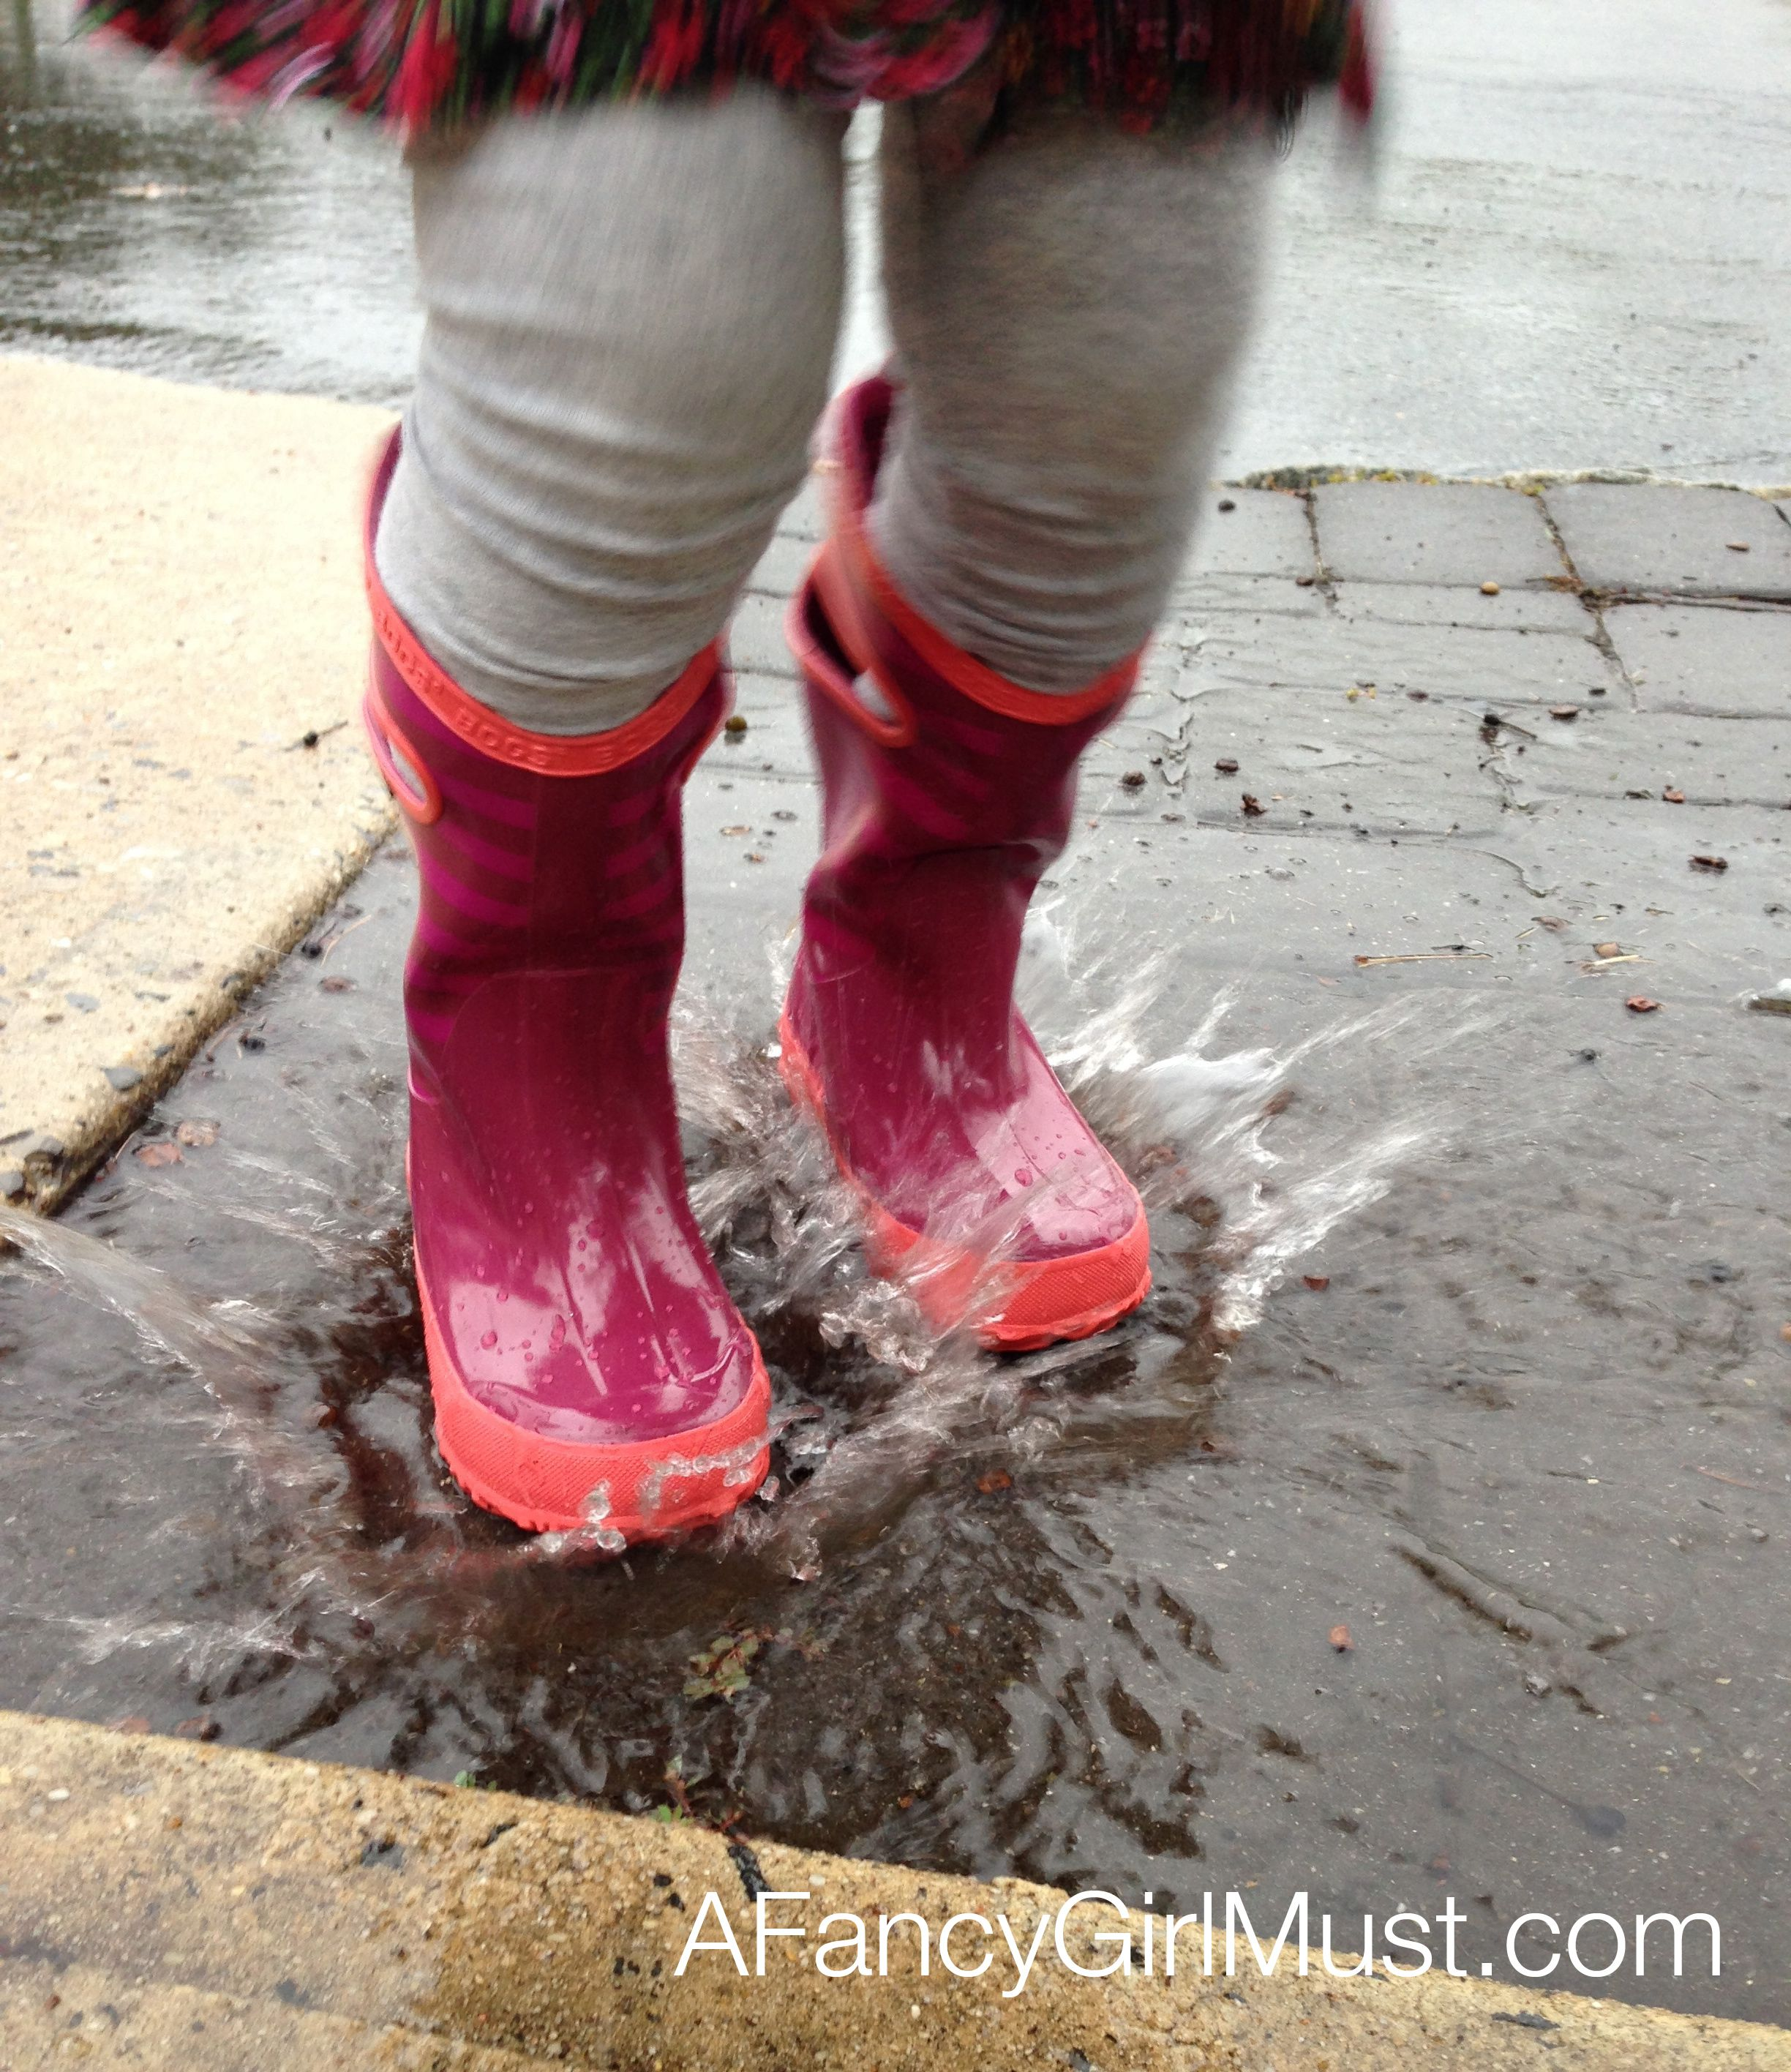 76bf264a963 Puddle Jumping: Bogs Rain Boots for Girls   AFancyGirlMust.com ...